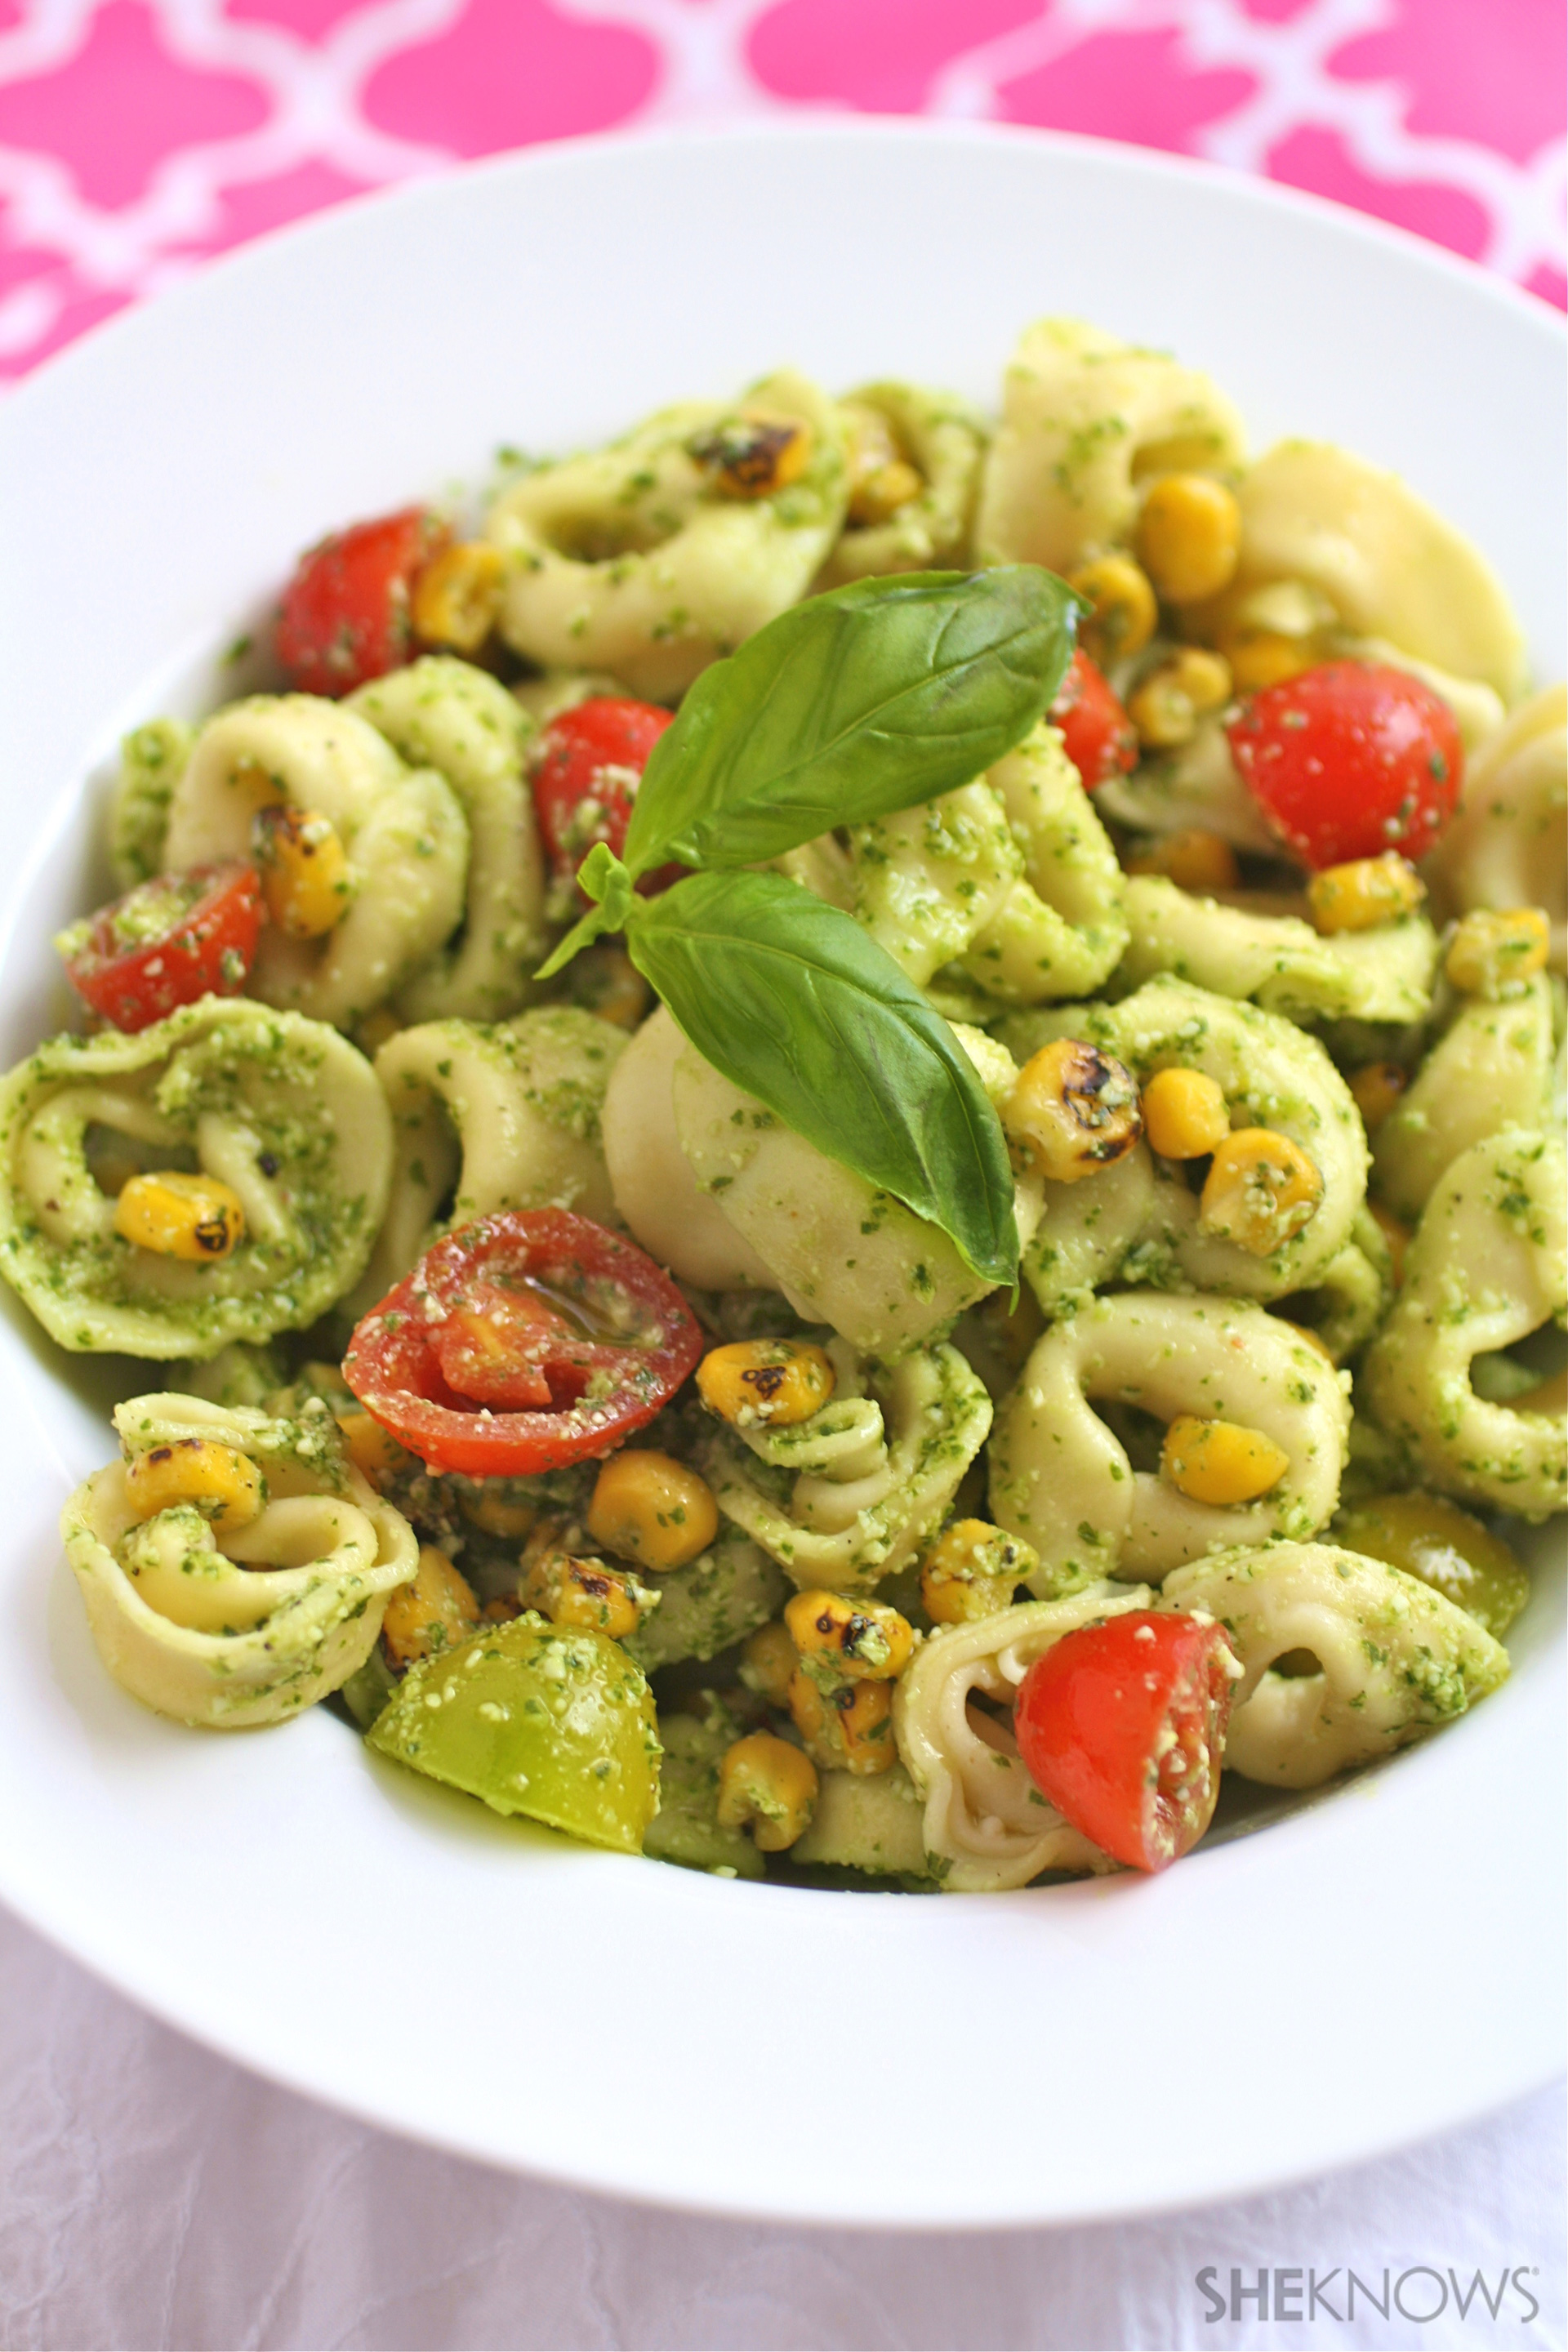 Warm Pasta Salad With Corn And Zucchini Recipes — Dishmaps